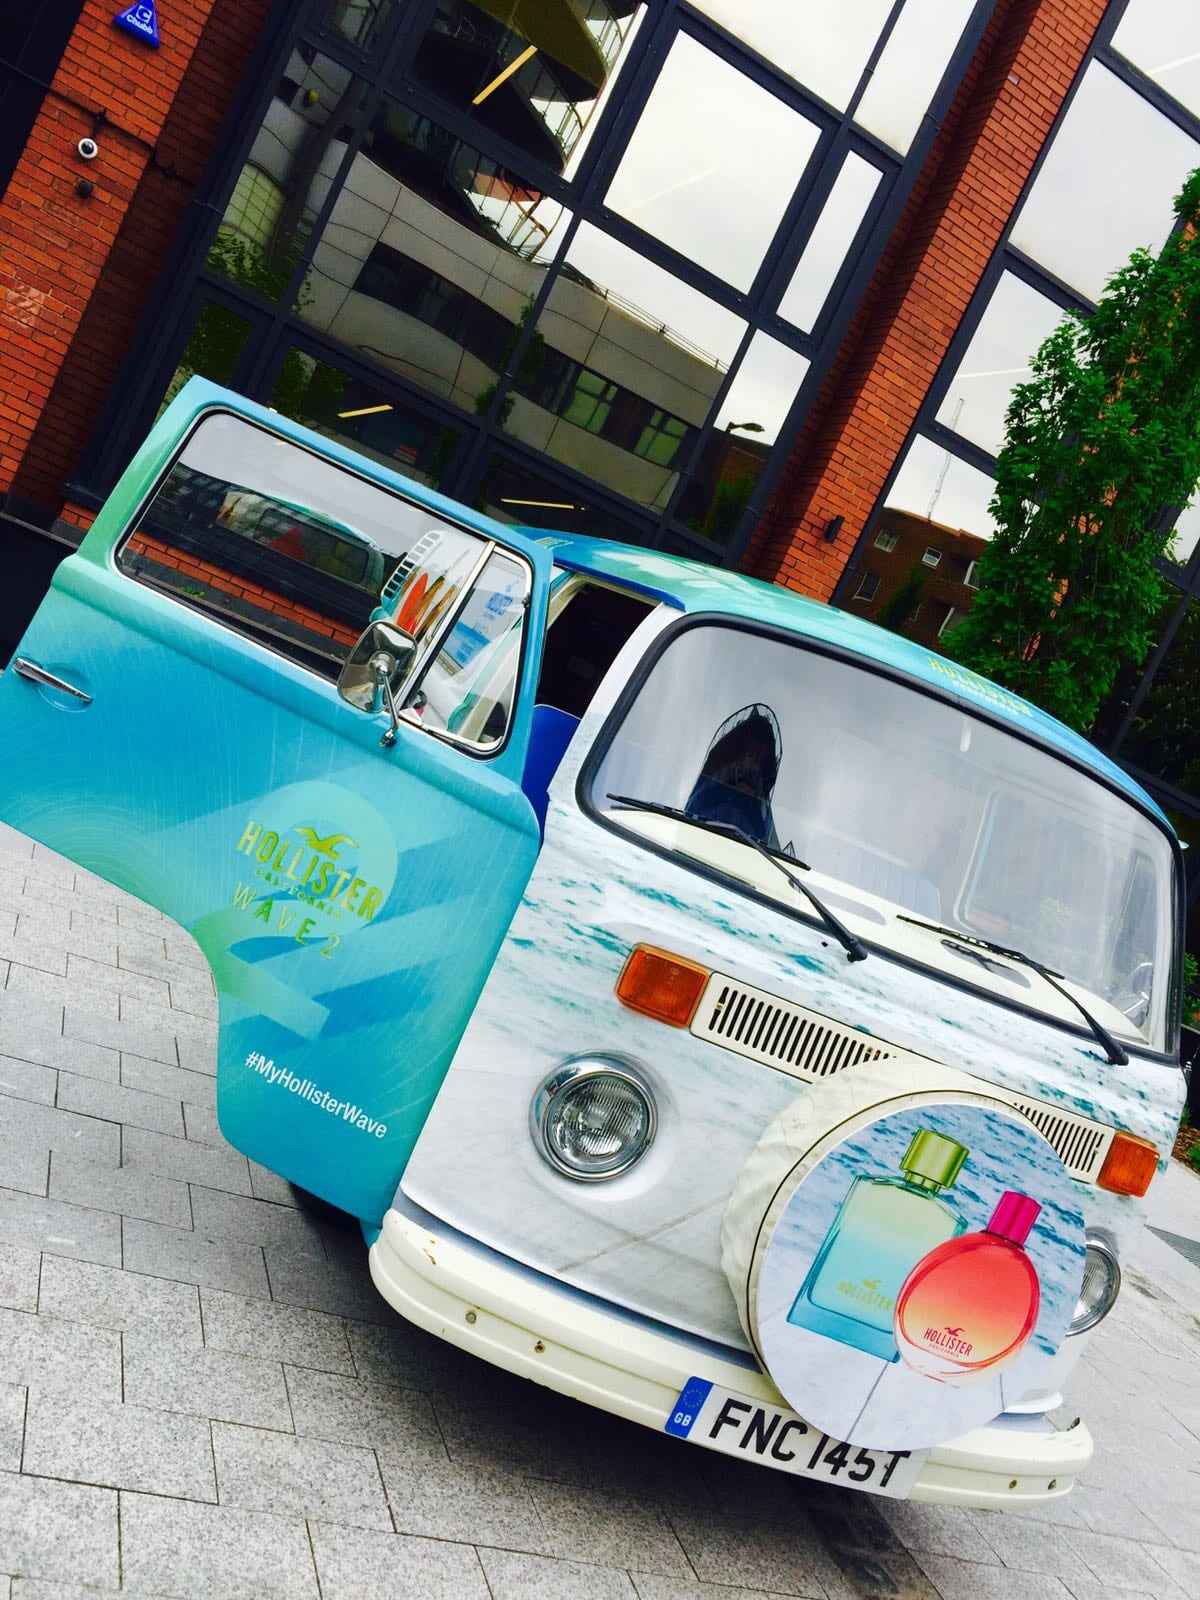 Branded promotional VW Camper